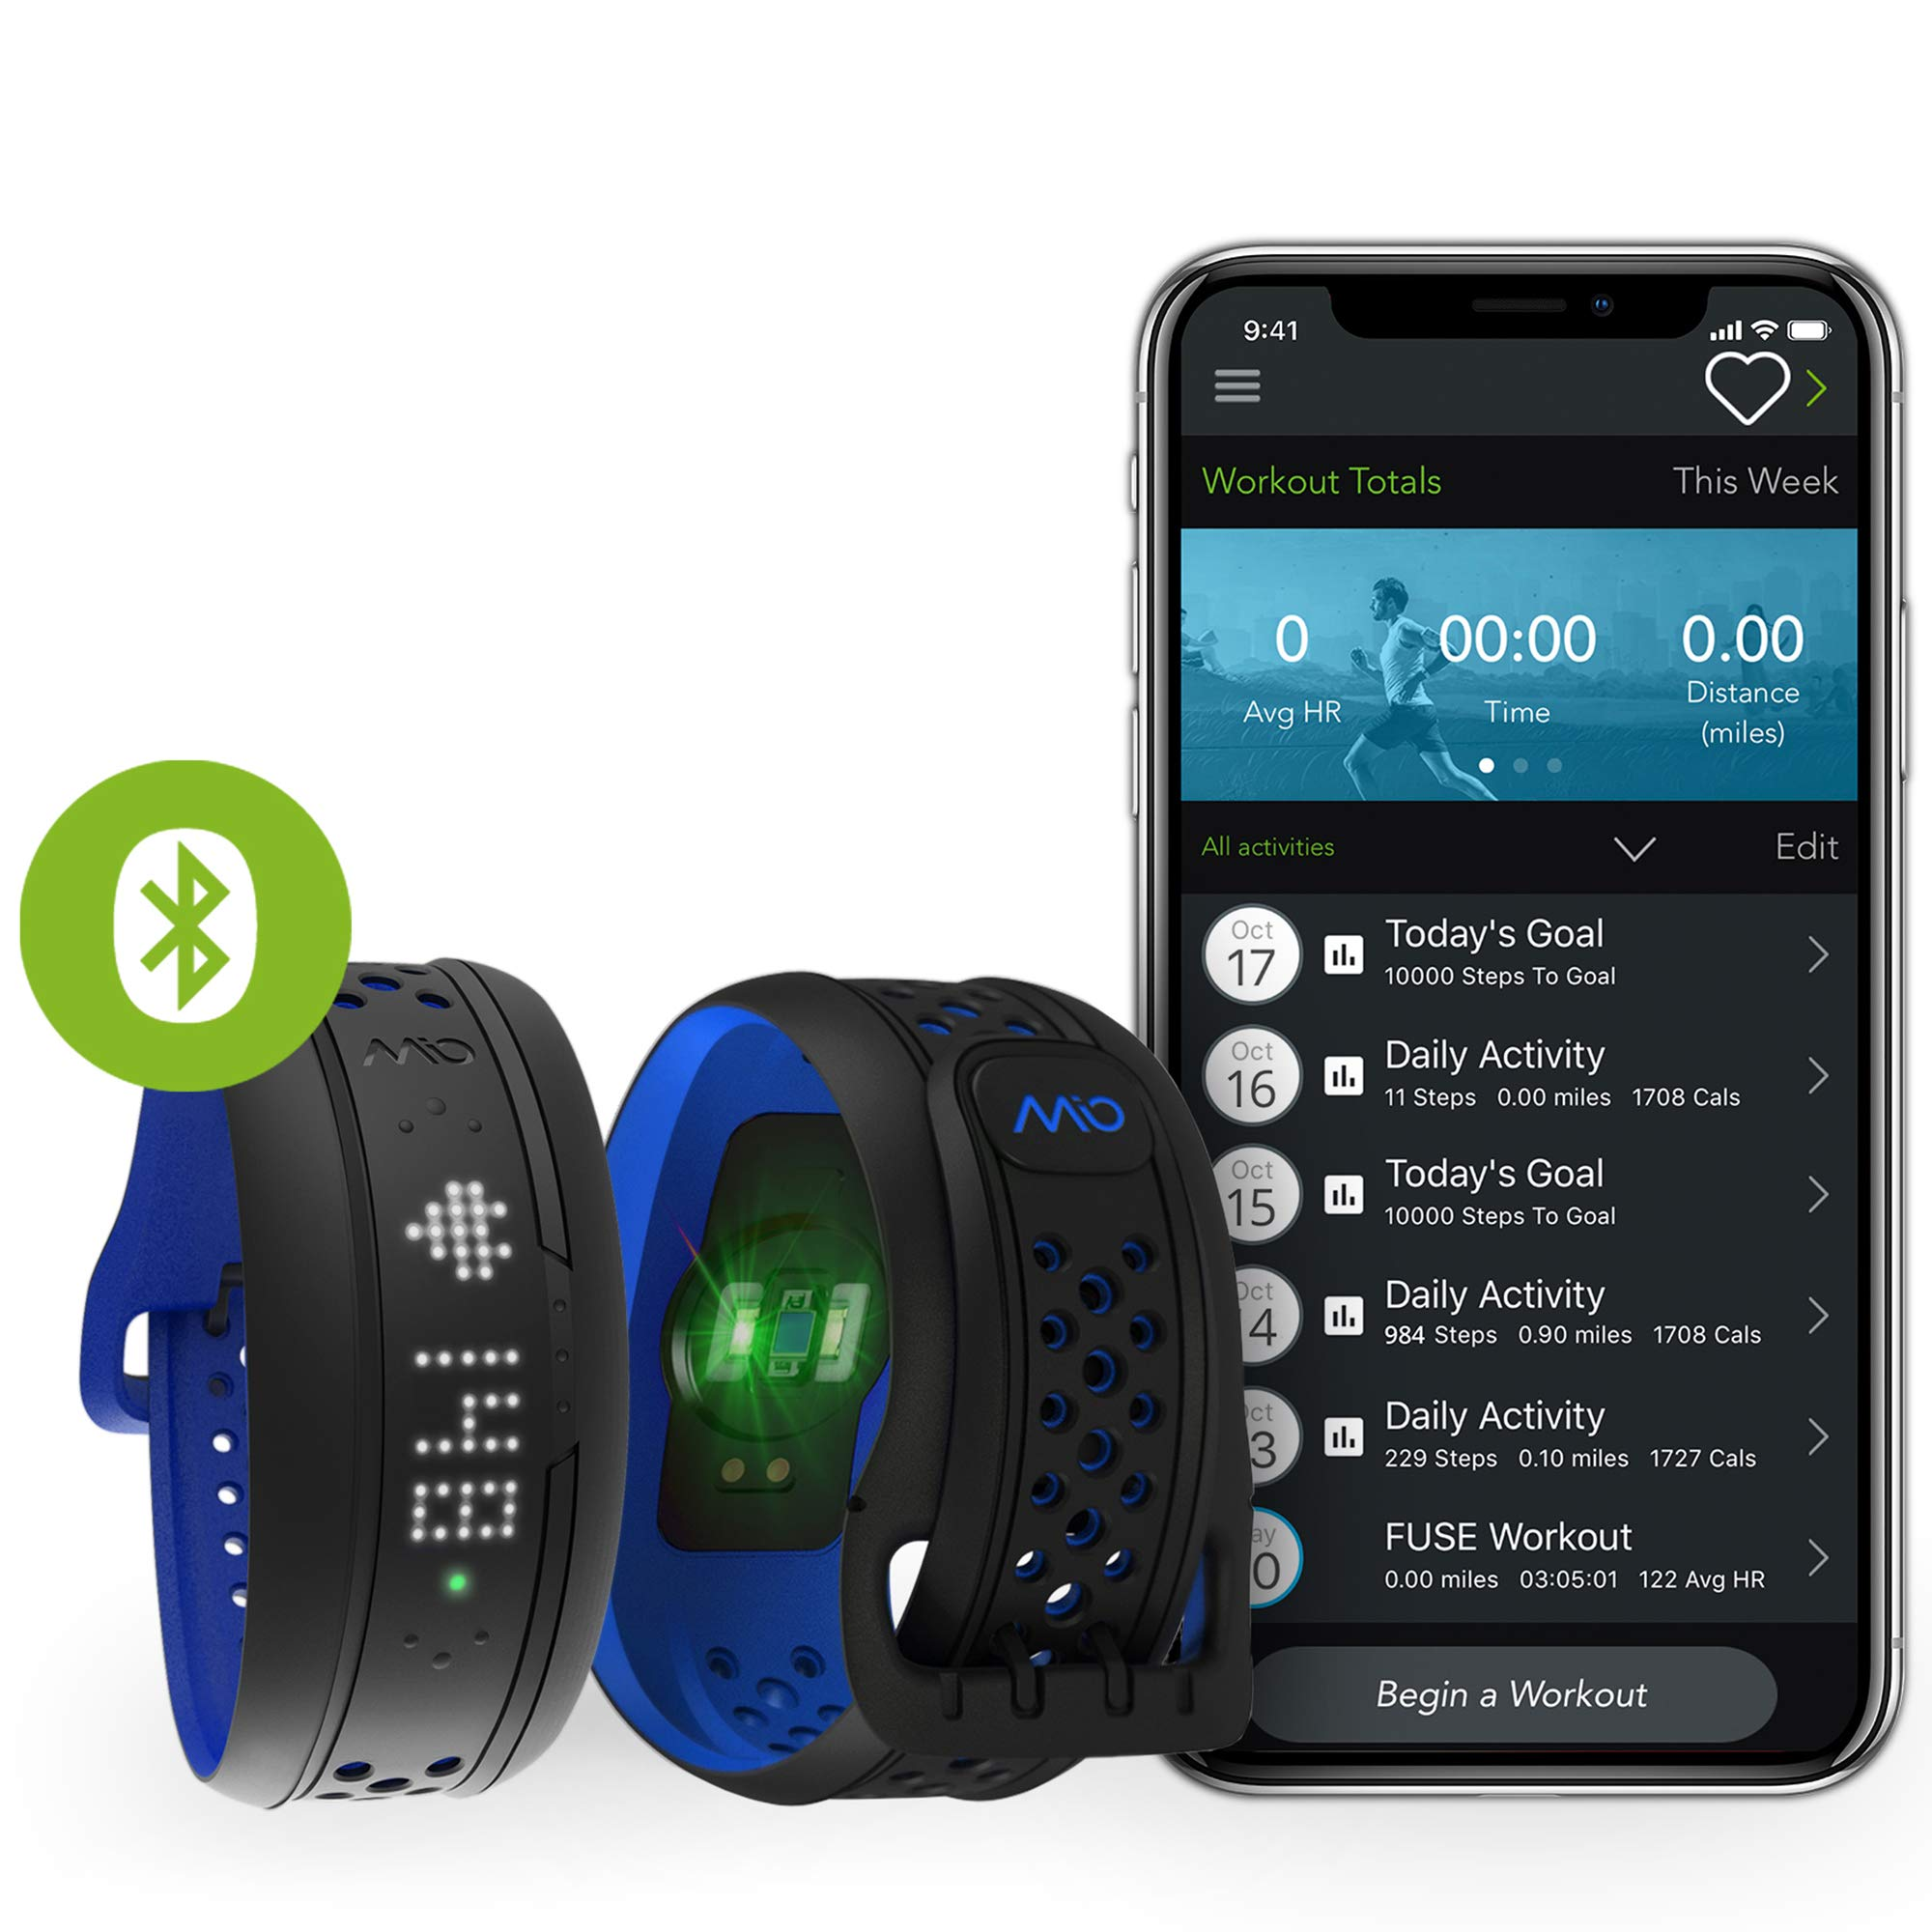 Mio FUSE Heart Rate, Sleep + Activity Tracker by Mio